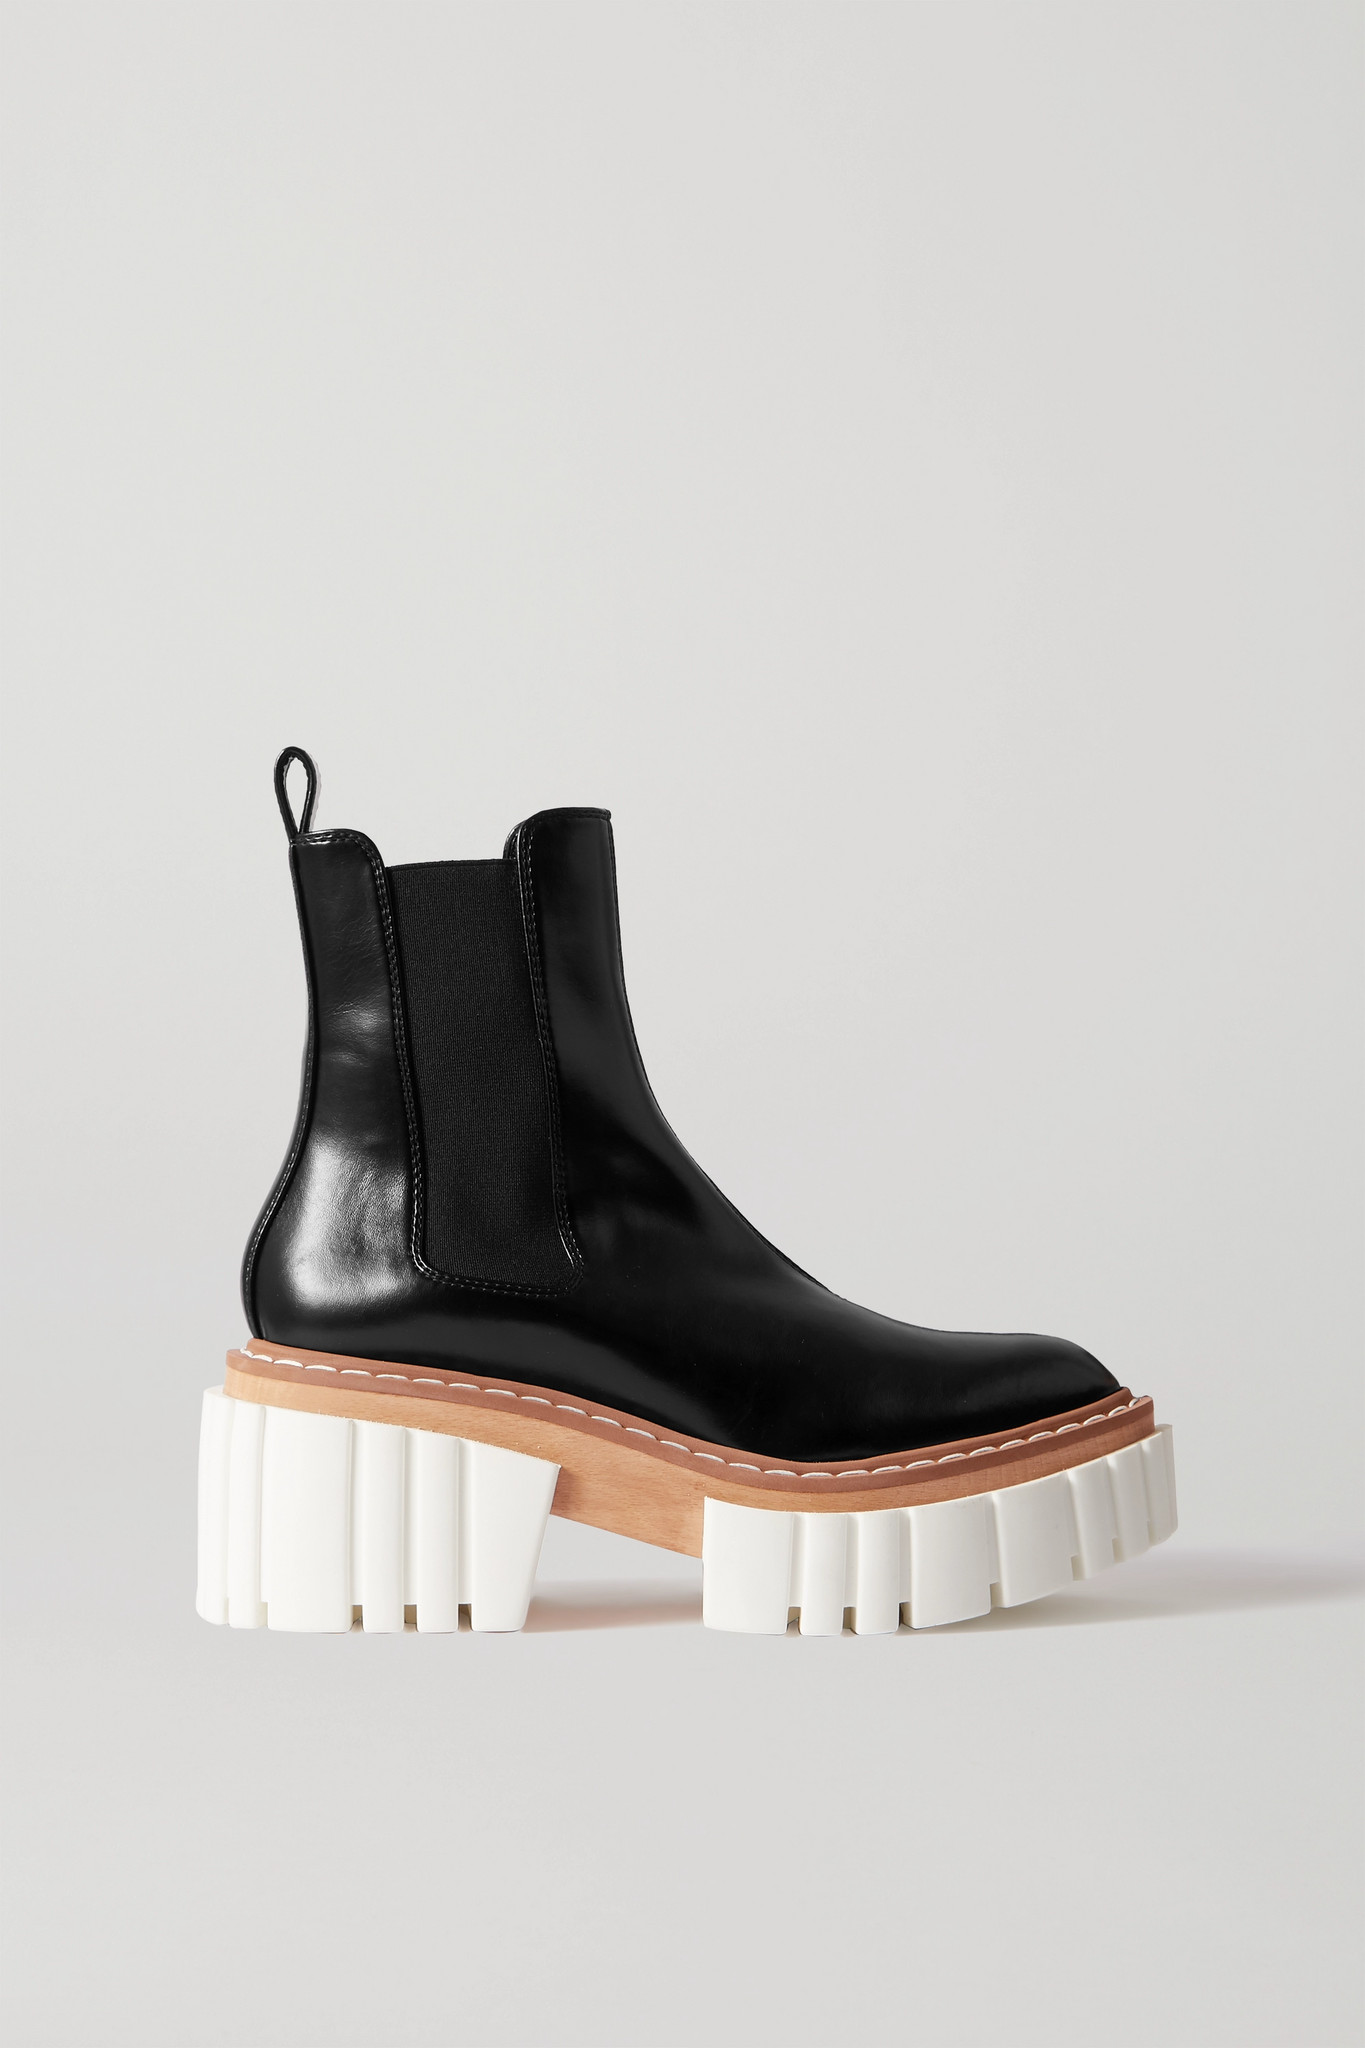 STELLA MCCARTNEY - Emilie Vegetarian Leather Platform Chelsea Boots - Black - IT39